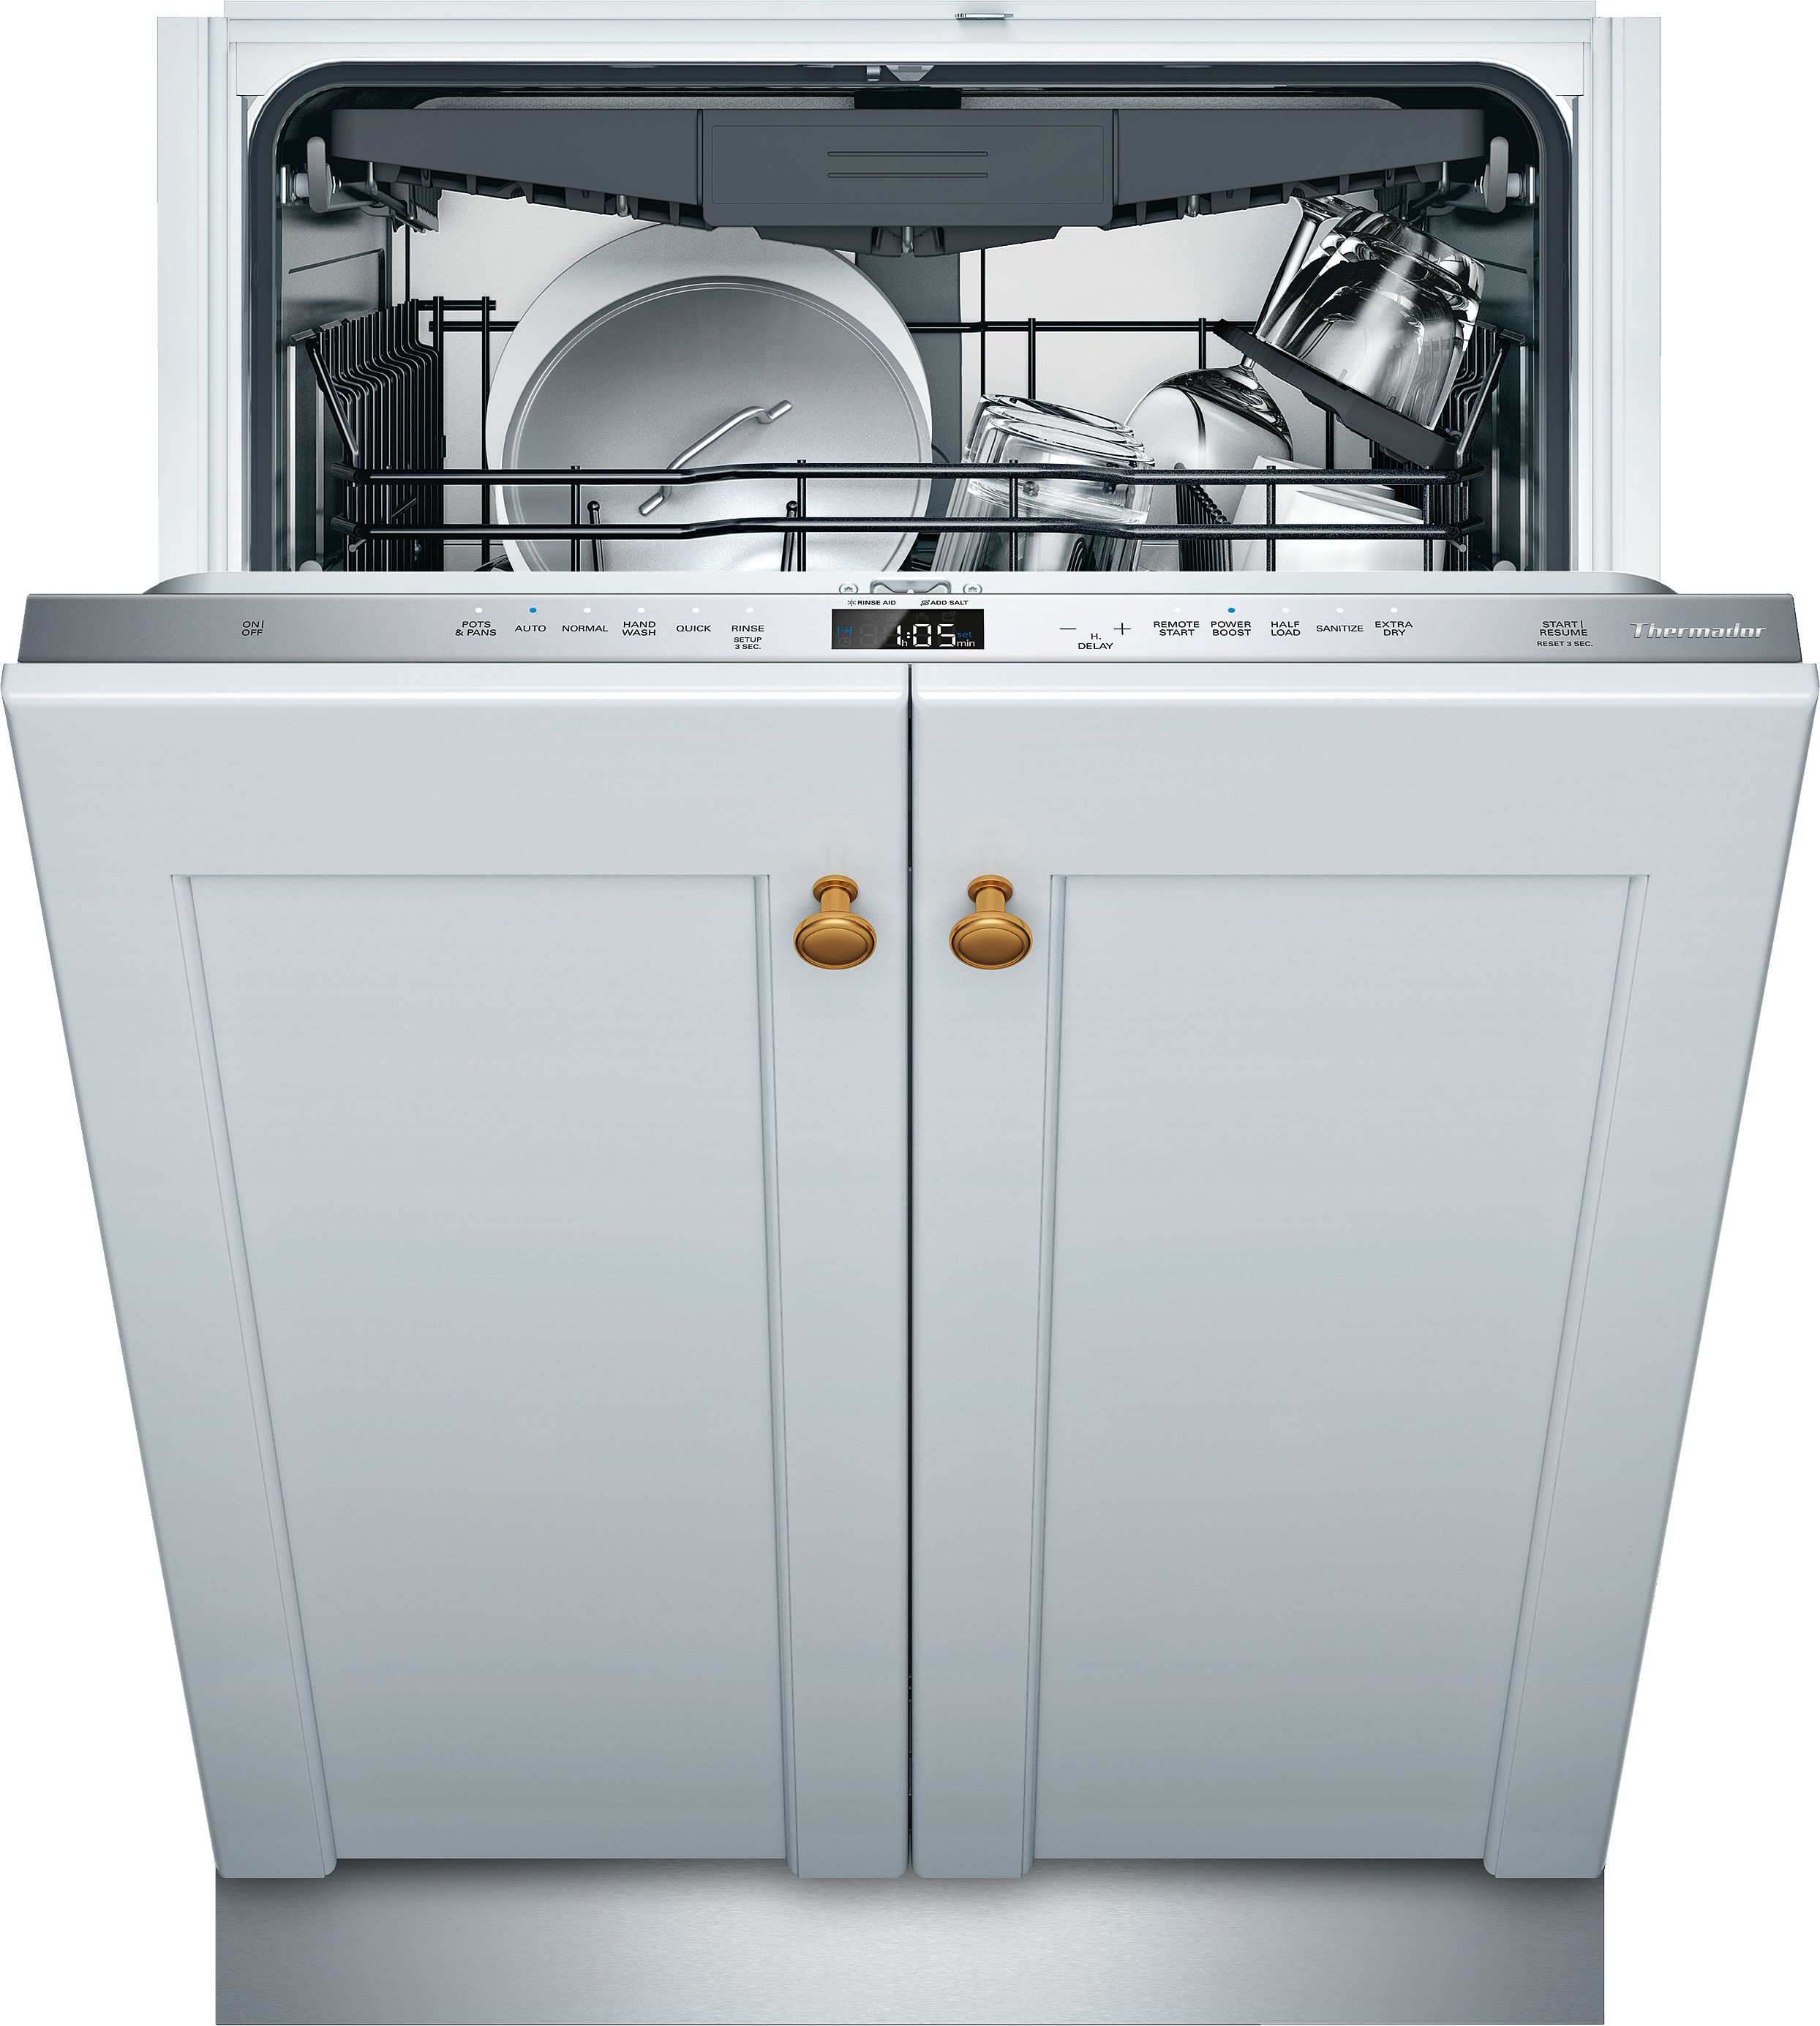 The dishwasher I selected from Thermador